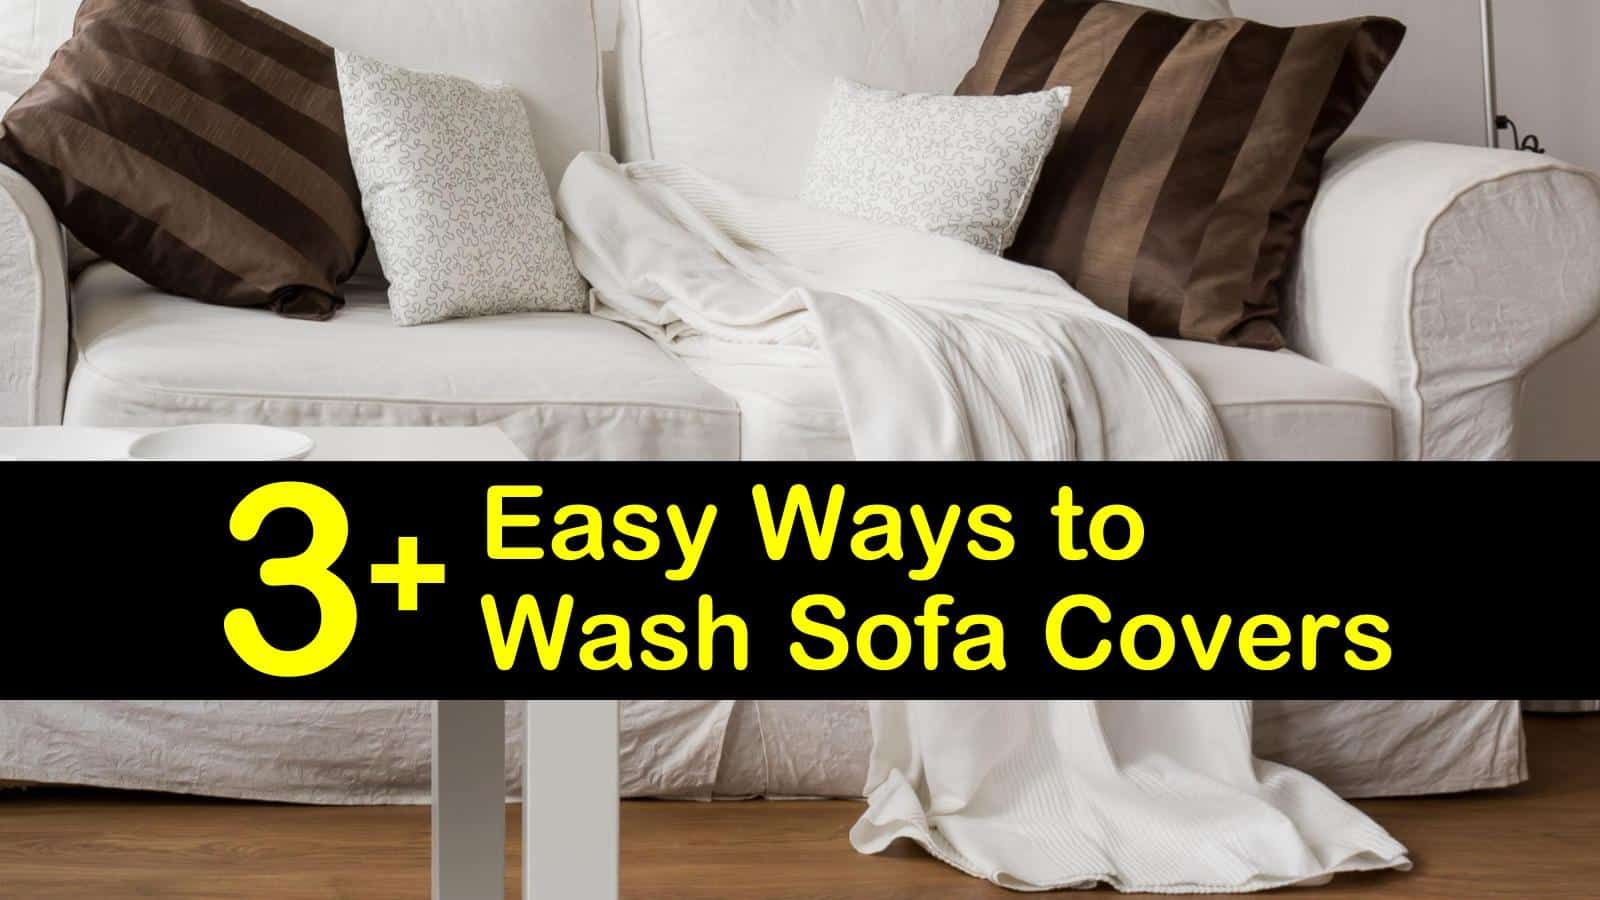 Wash Dry Clean Only Sofa Covers In 2020 Sofa Covers Microfiber Couch Cover Clean Sofa